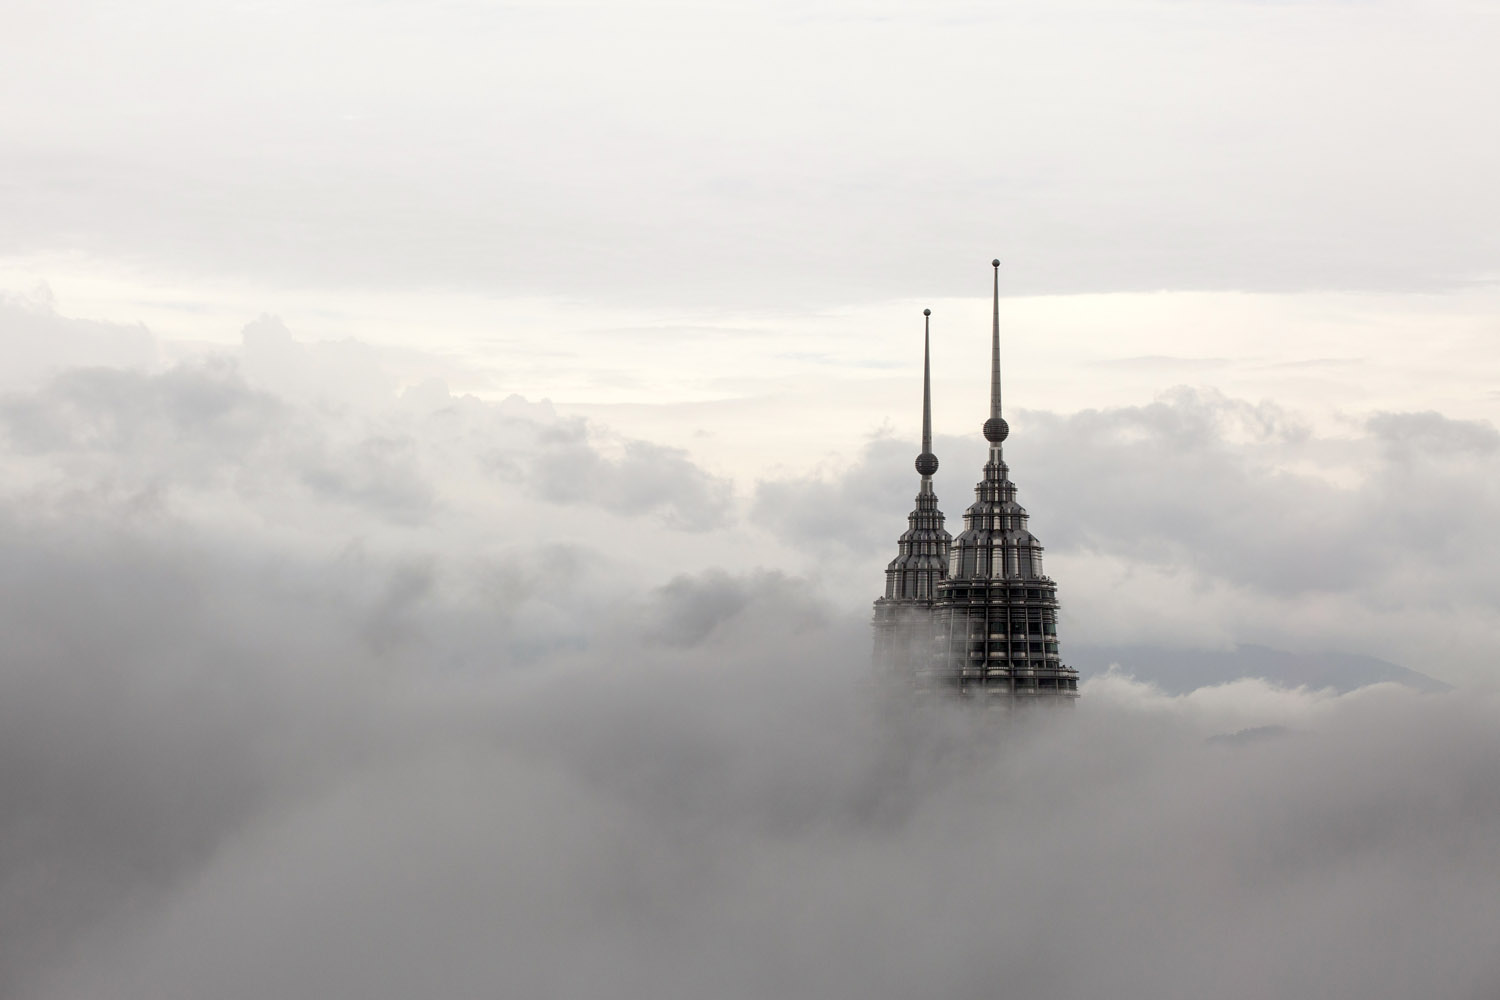 Mar. 18, 2014. The pinnacles of the Petronas Twin Towers protrude through low clouds in Kuala Lumpur.